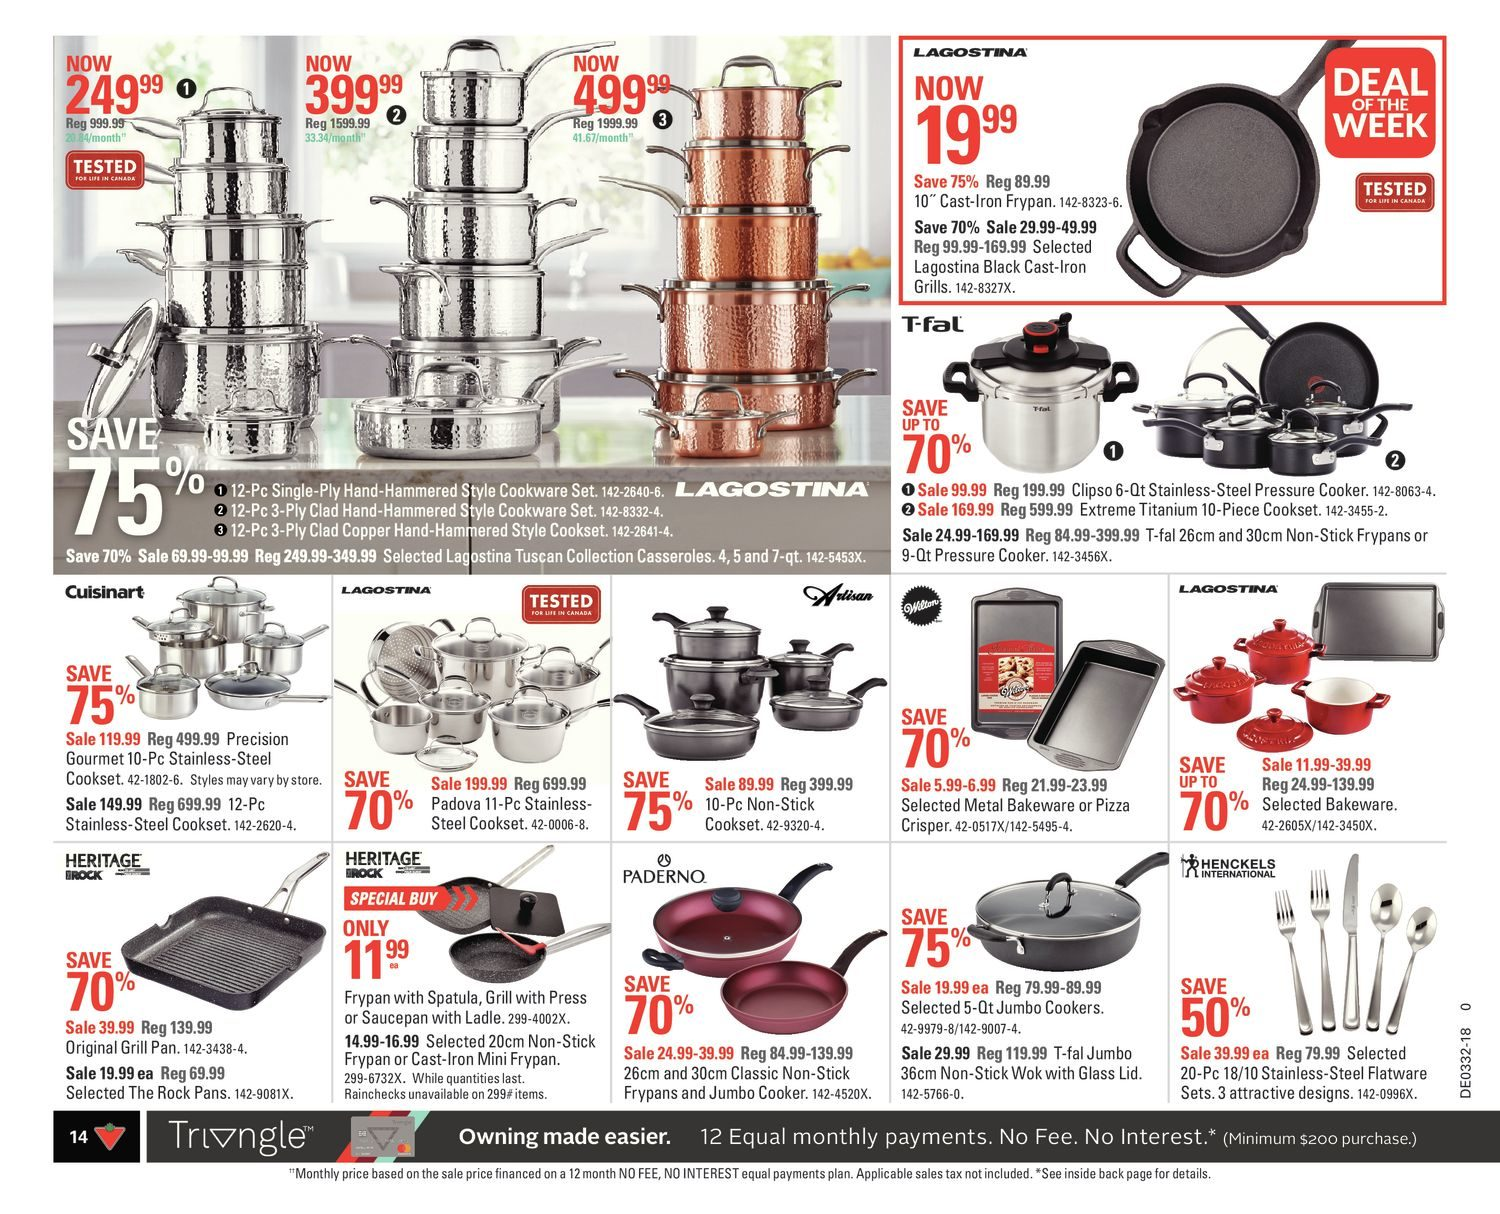 c596f0b22f0 Canadian Tire Weekly Flyer - Weekly - Long Weekend Sale - Aug 3 – 9 -  RedFlagDeals.com